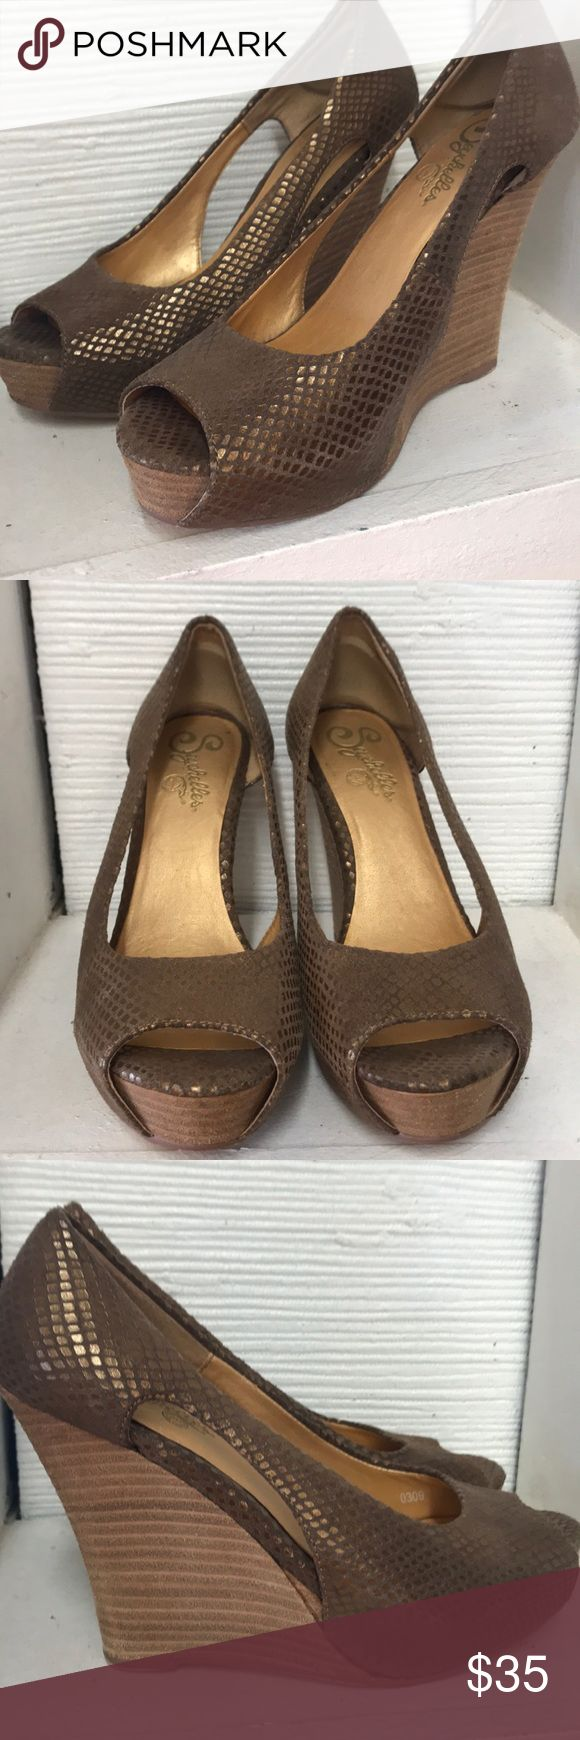 Preloved Seychelles metallic Wedges Bronze 7 Preloved Seychelles Metallic Leather bronze colored wedges Size 7 Great condition Metallic gold on the inside, the spots on inside were from where some orthopedic insoles were inside shoe Seychelles Shoes Wedges